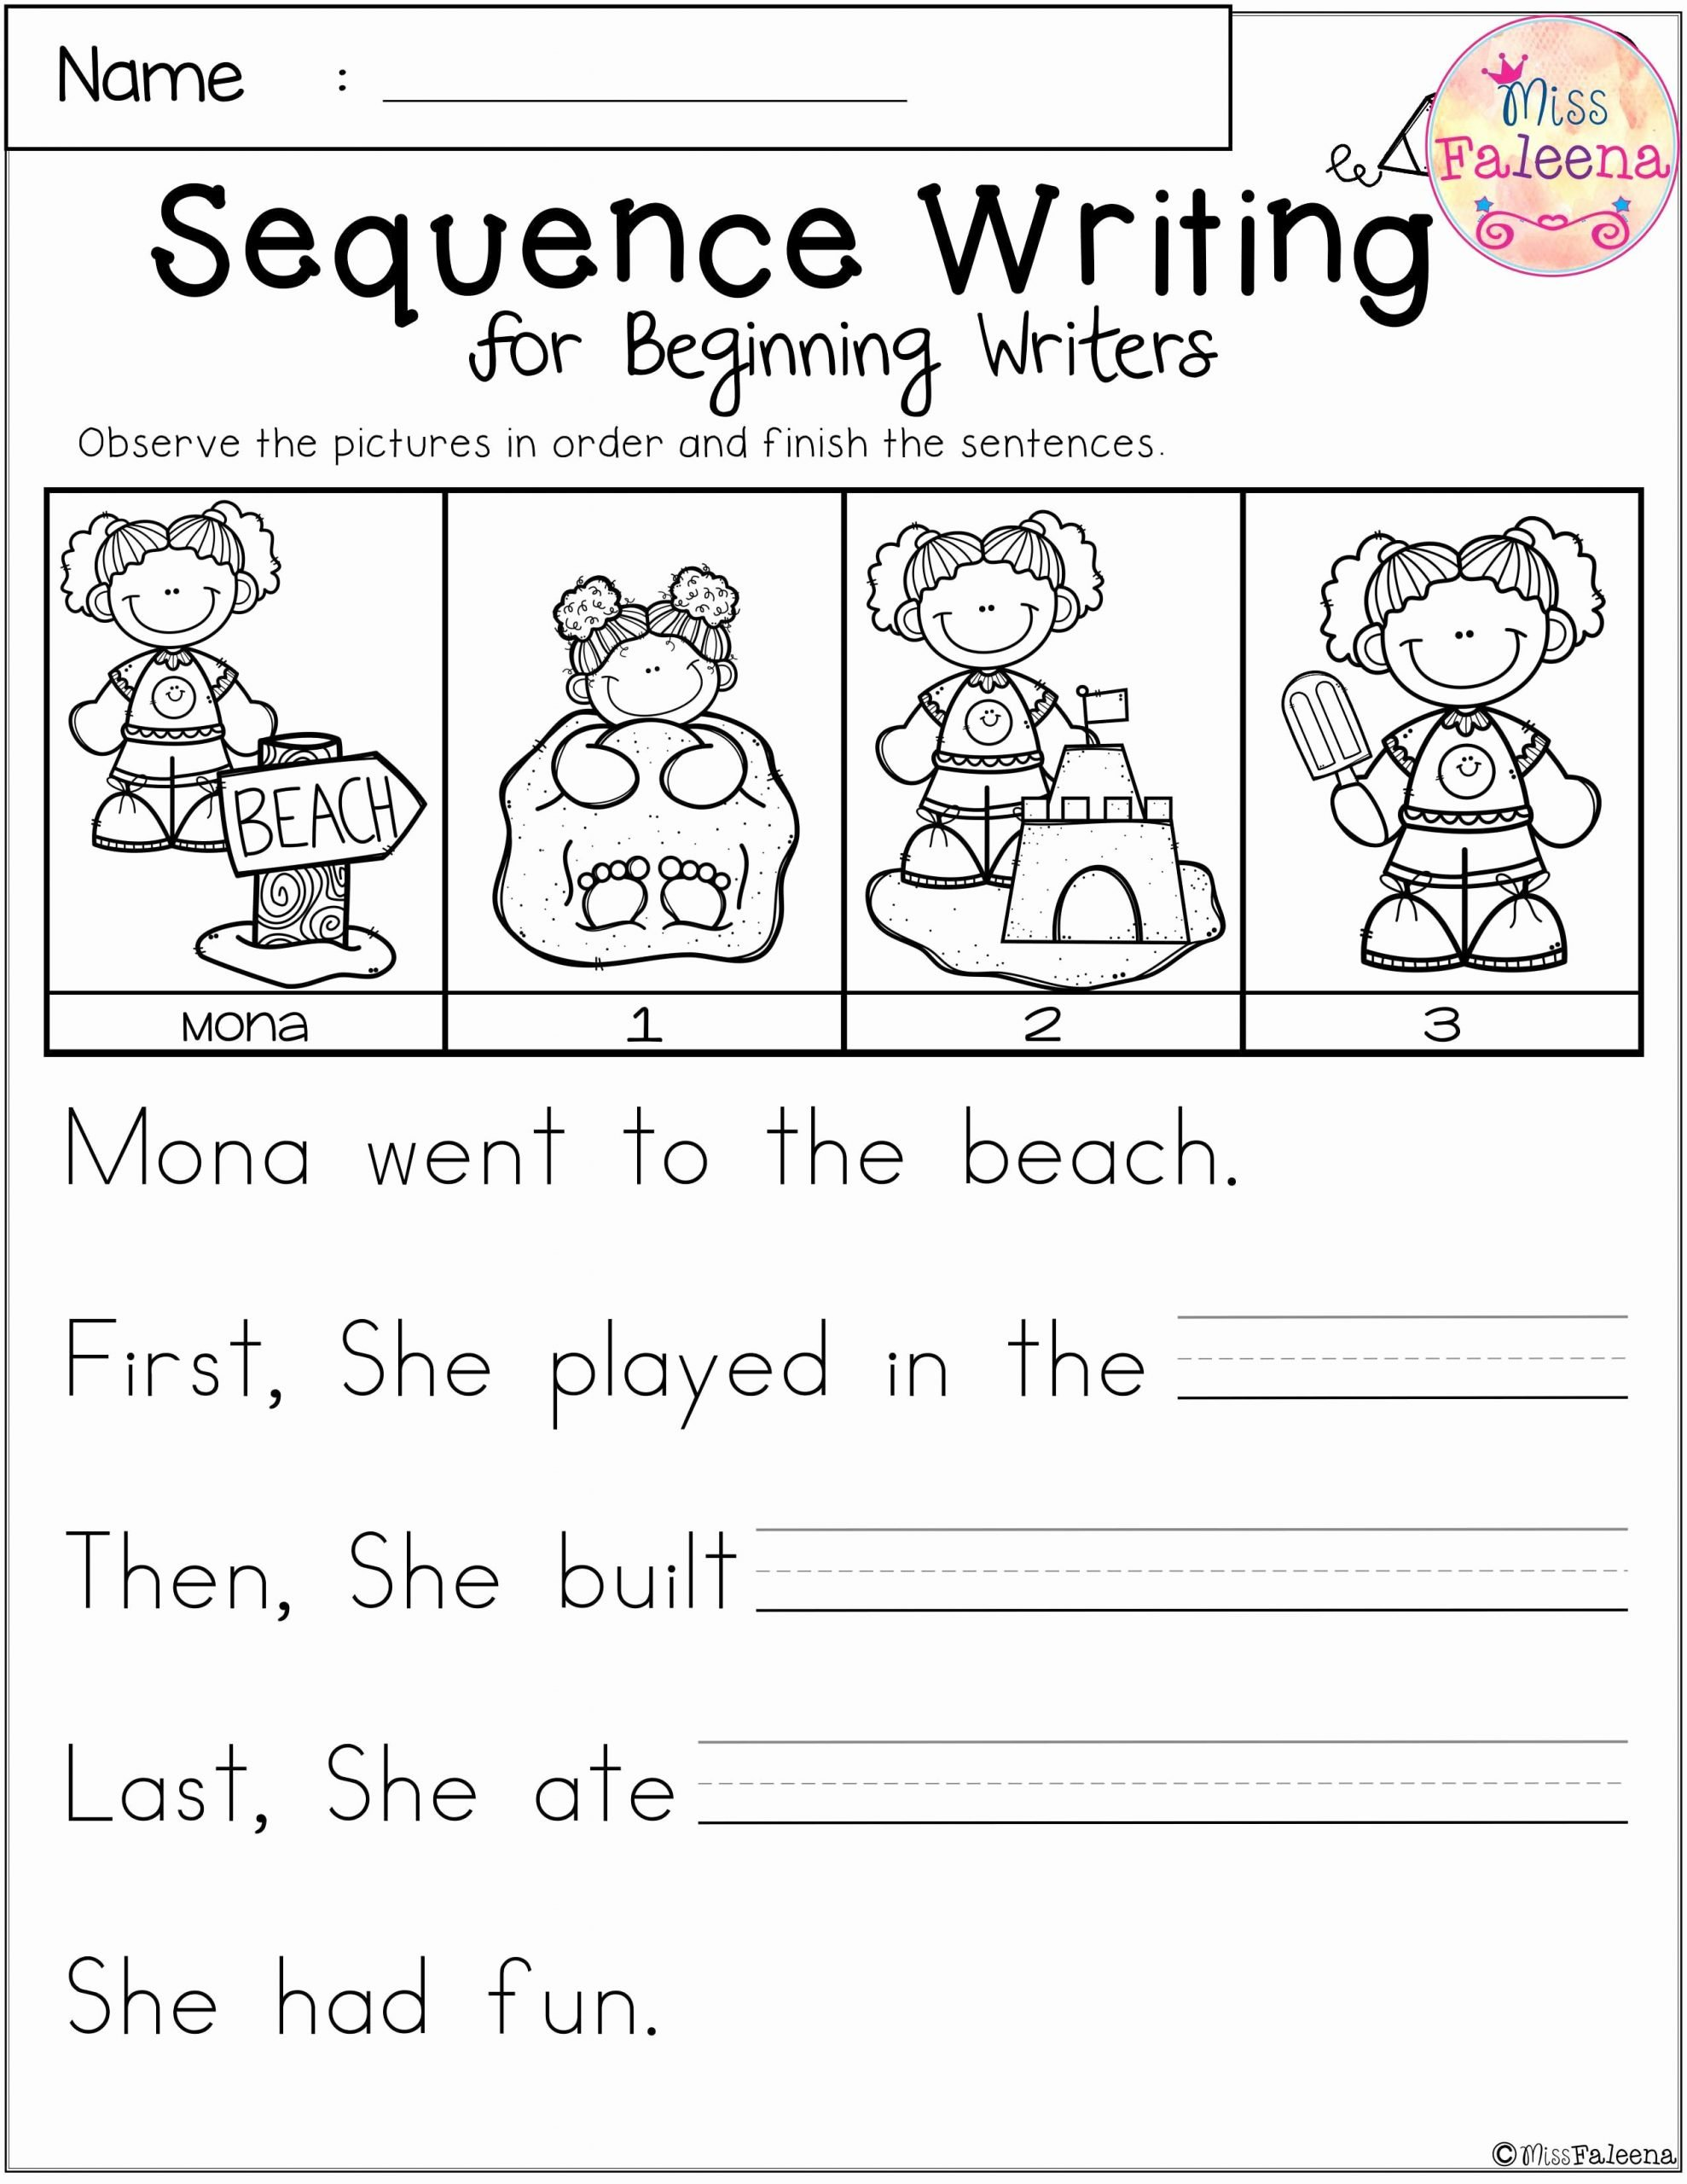 Sequencing Worksheets for Preschoolers Inspirational Free Sequence Writing for Beginning Writers